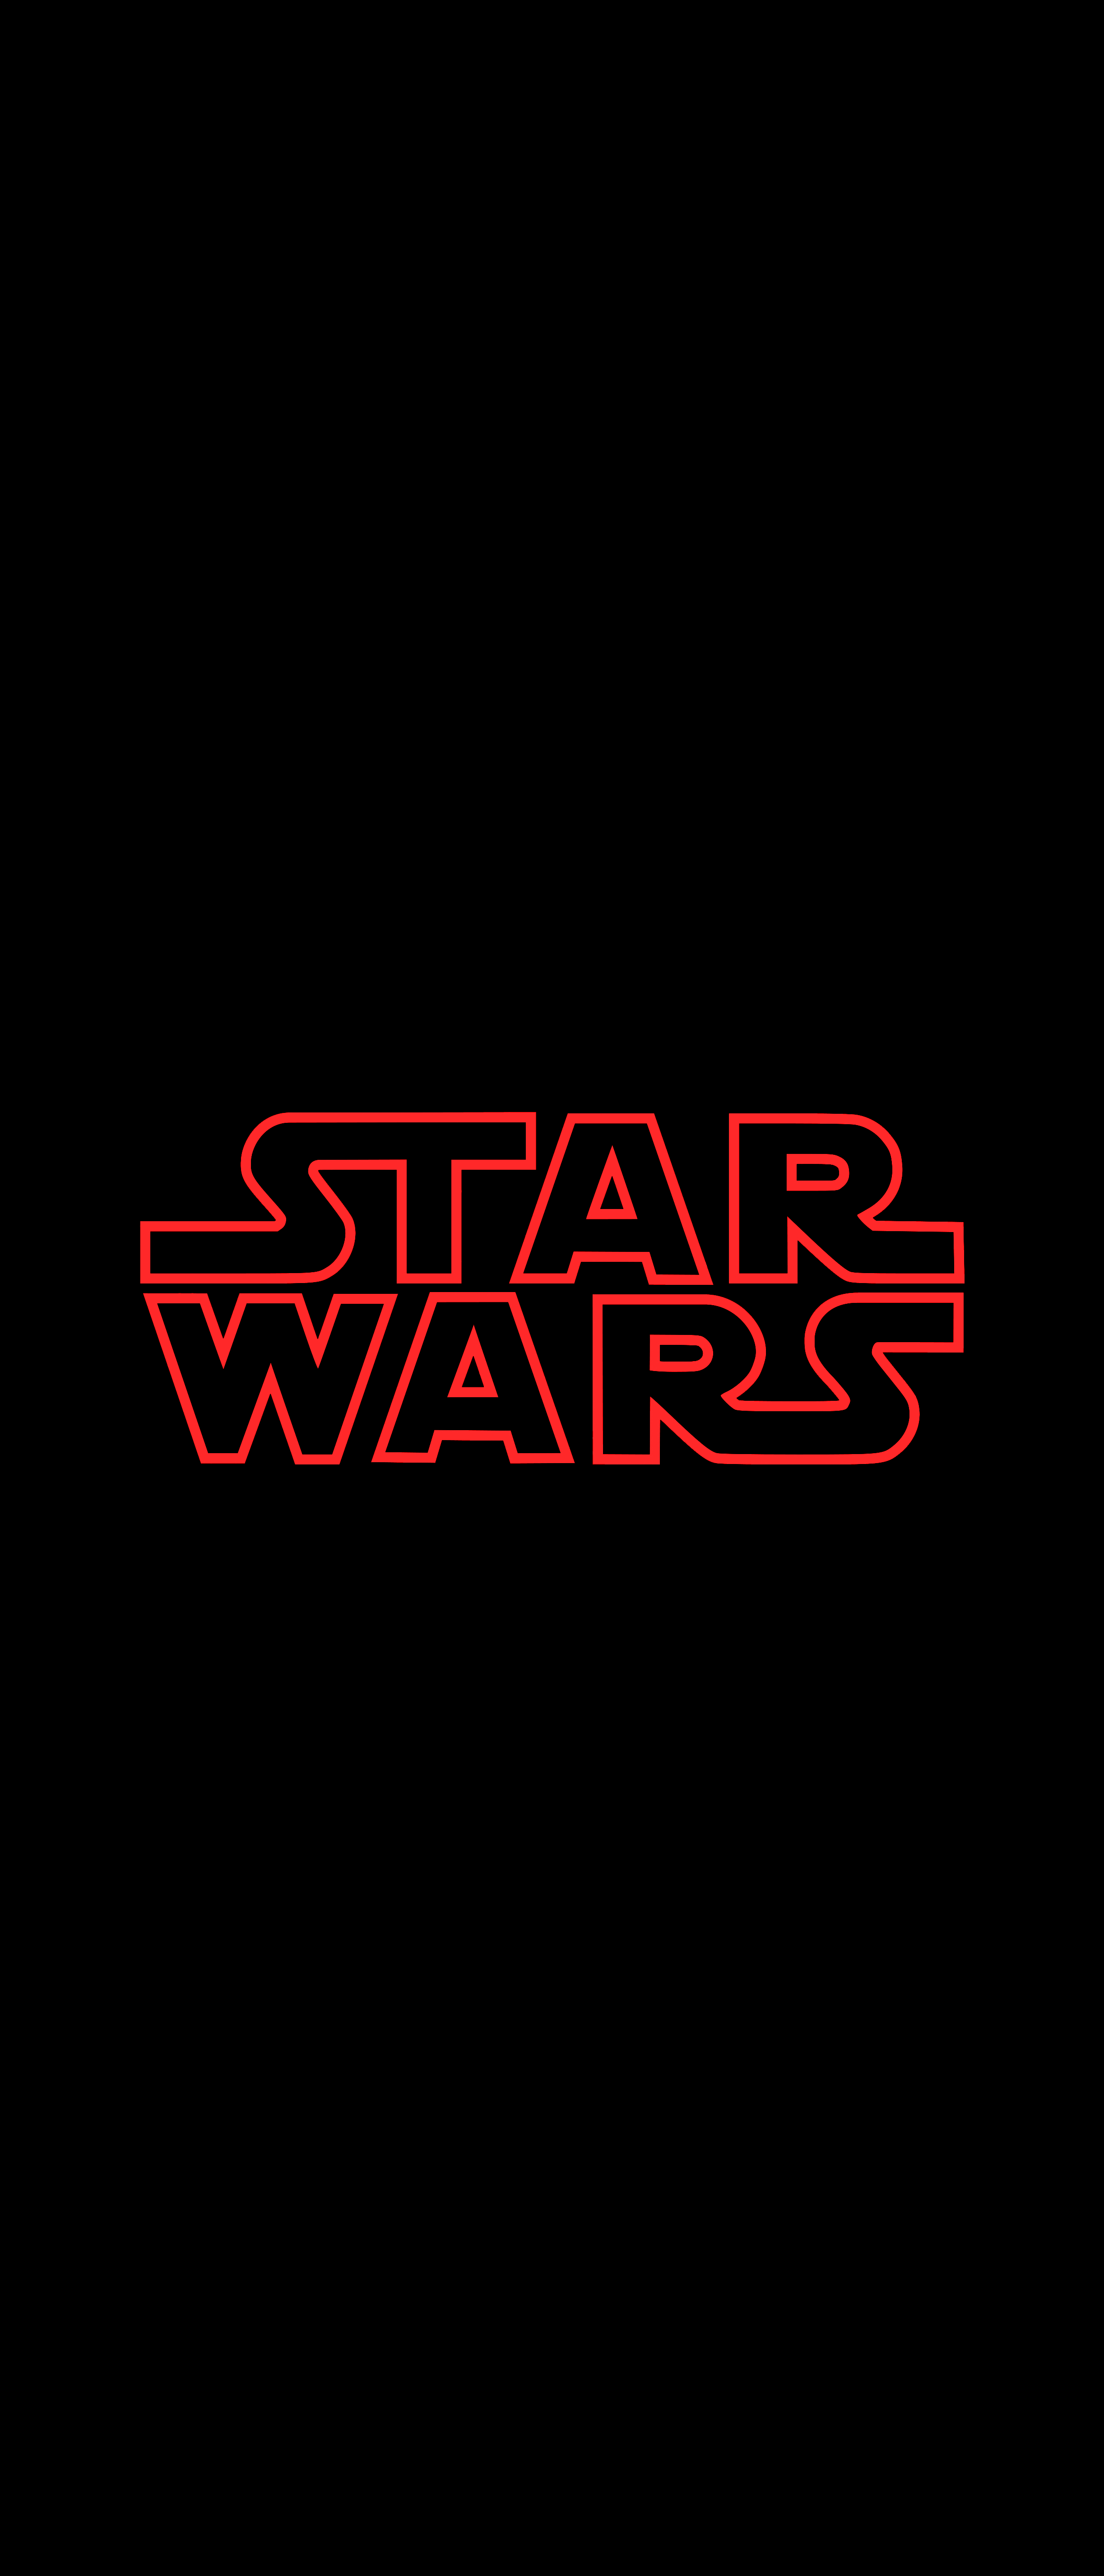 The Force Is Strong With These Amoled Wallpapers For Star Wars Day Laptrinhx